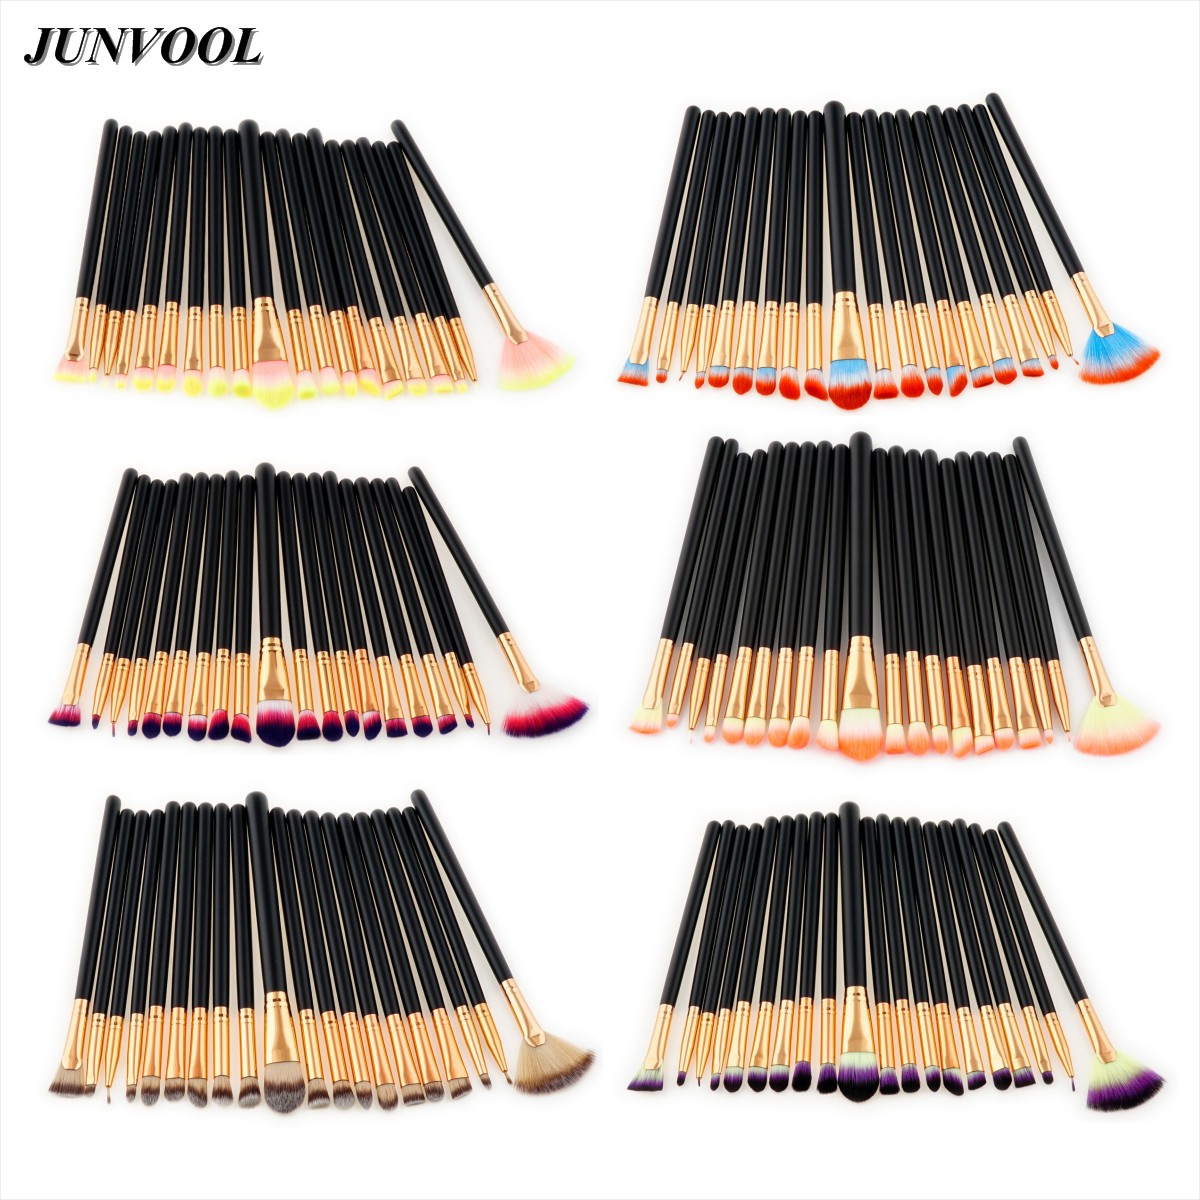 цены Pro 20pcs Eyes Makeup Brushes Set Foundation Eyeshadow Eyeliner Lip Cosmetic Fan Brush Toiletry Kit Pincel Maleta De Maquiagem